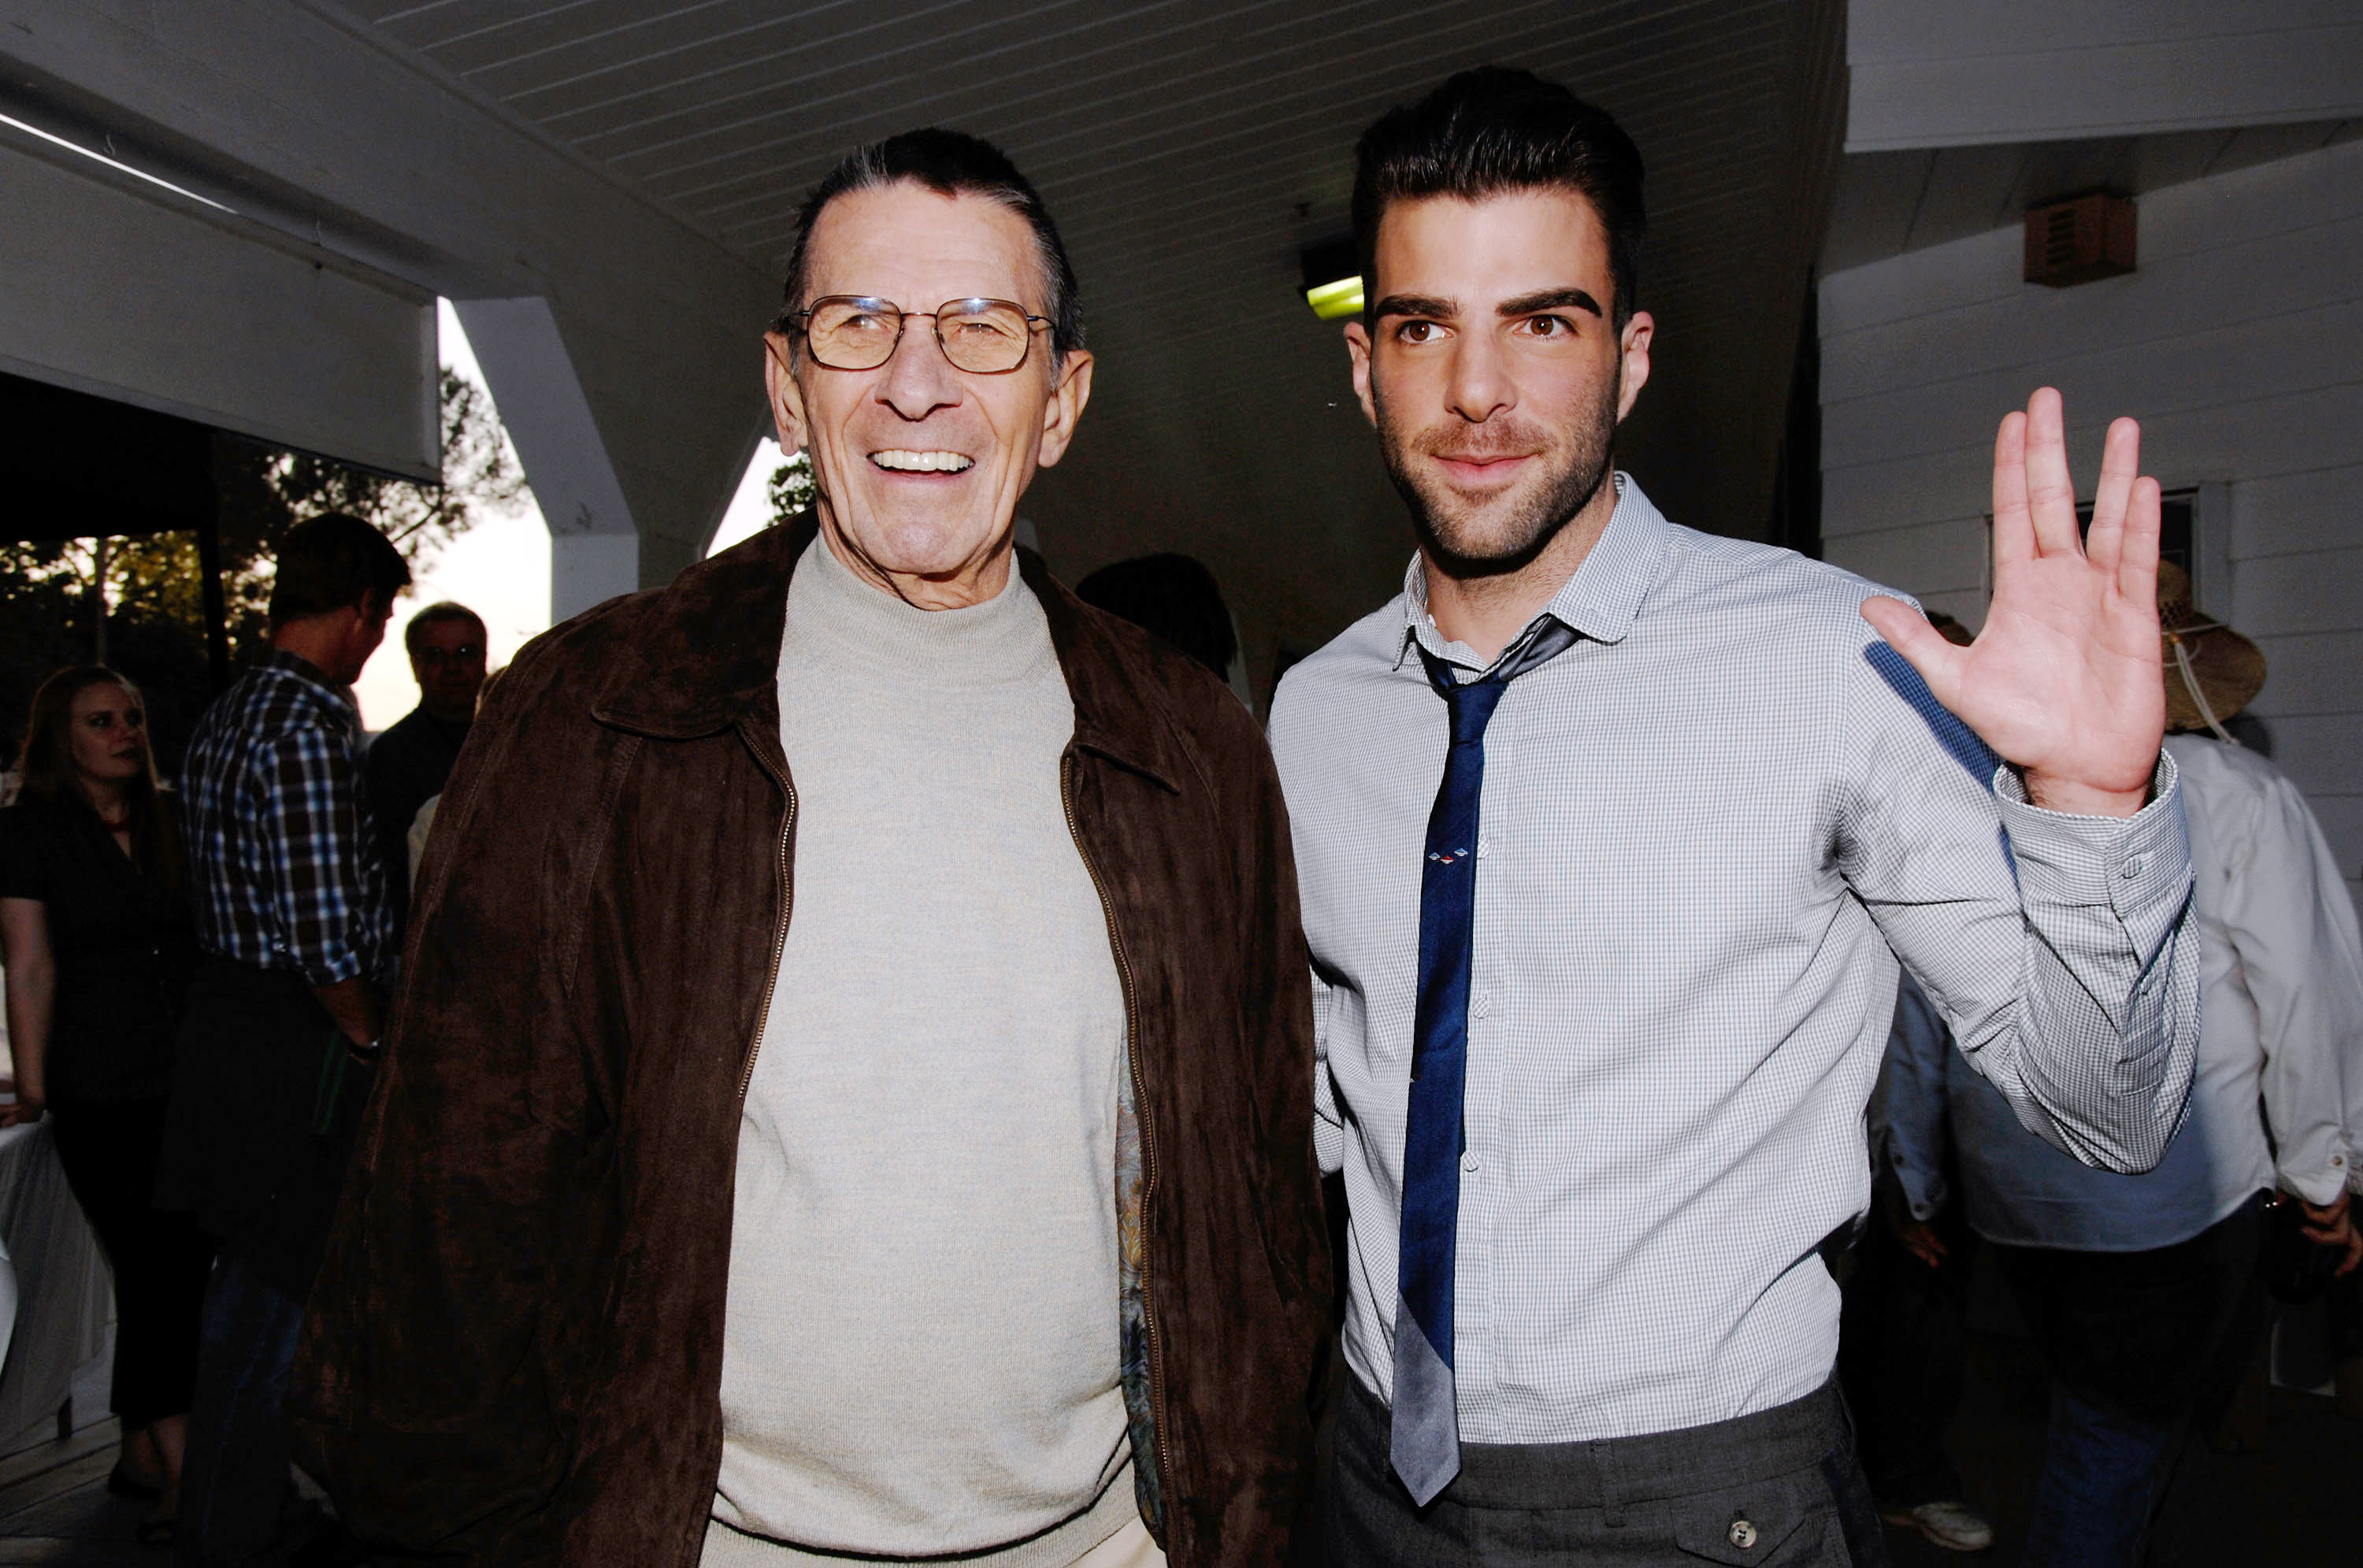 Actors Leonard Nimoy (L) and Zachary Quinto (R) attend the 19th Annual  Hollywood Charity Horse Show  at the Los Angeles Equestrian Center on April 25, 2009 in Burbank, California.